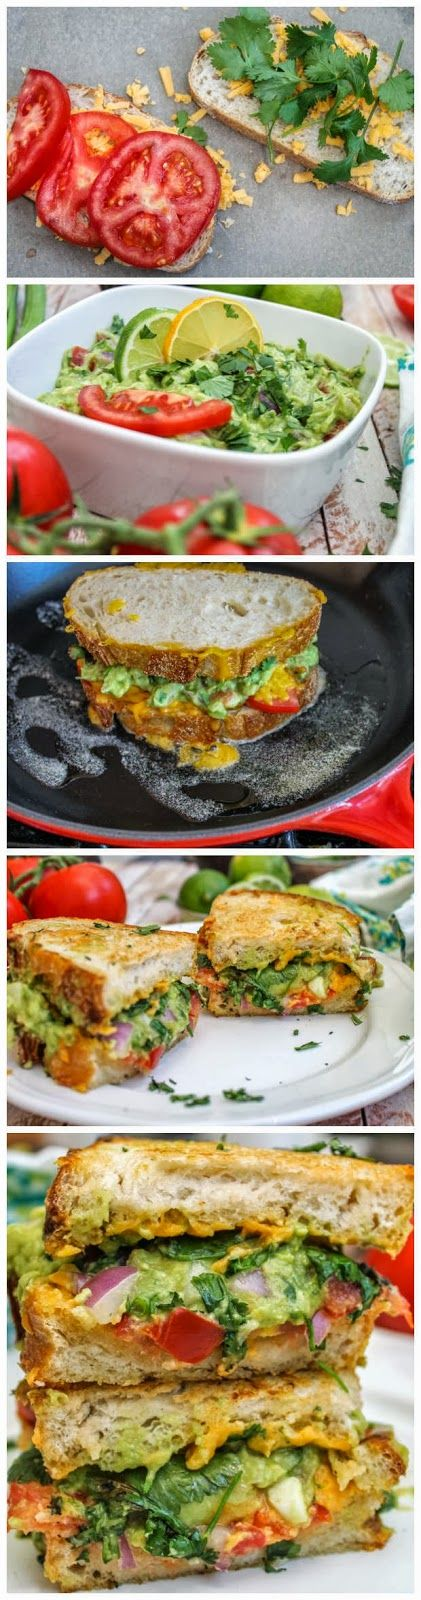 Guacamole Grilled Cheese Sandwich...something different to try at home